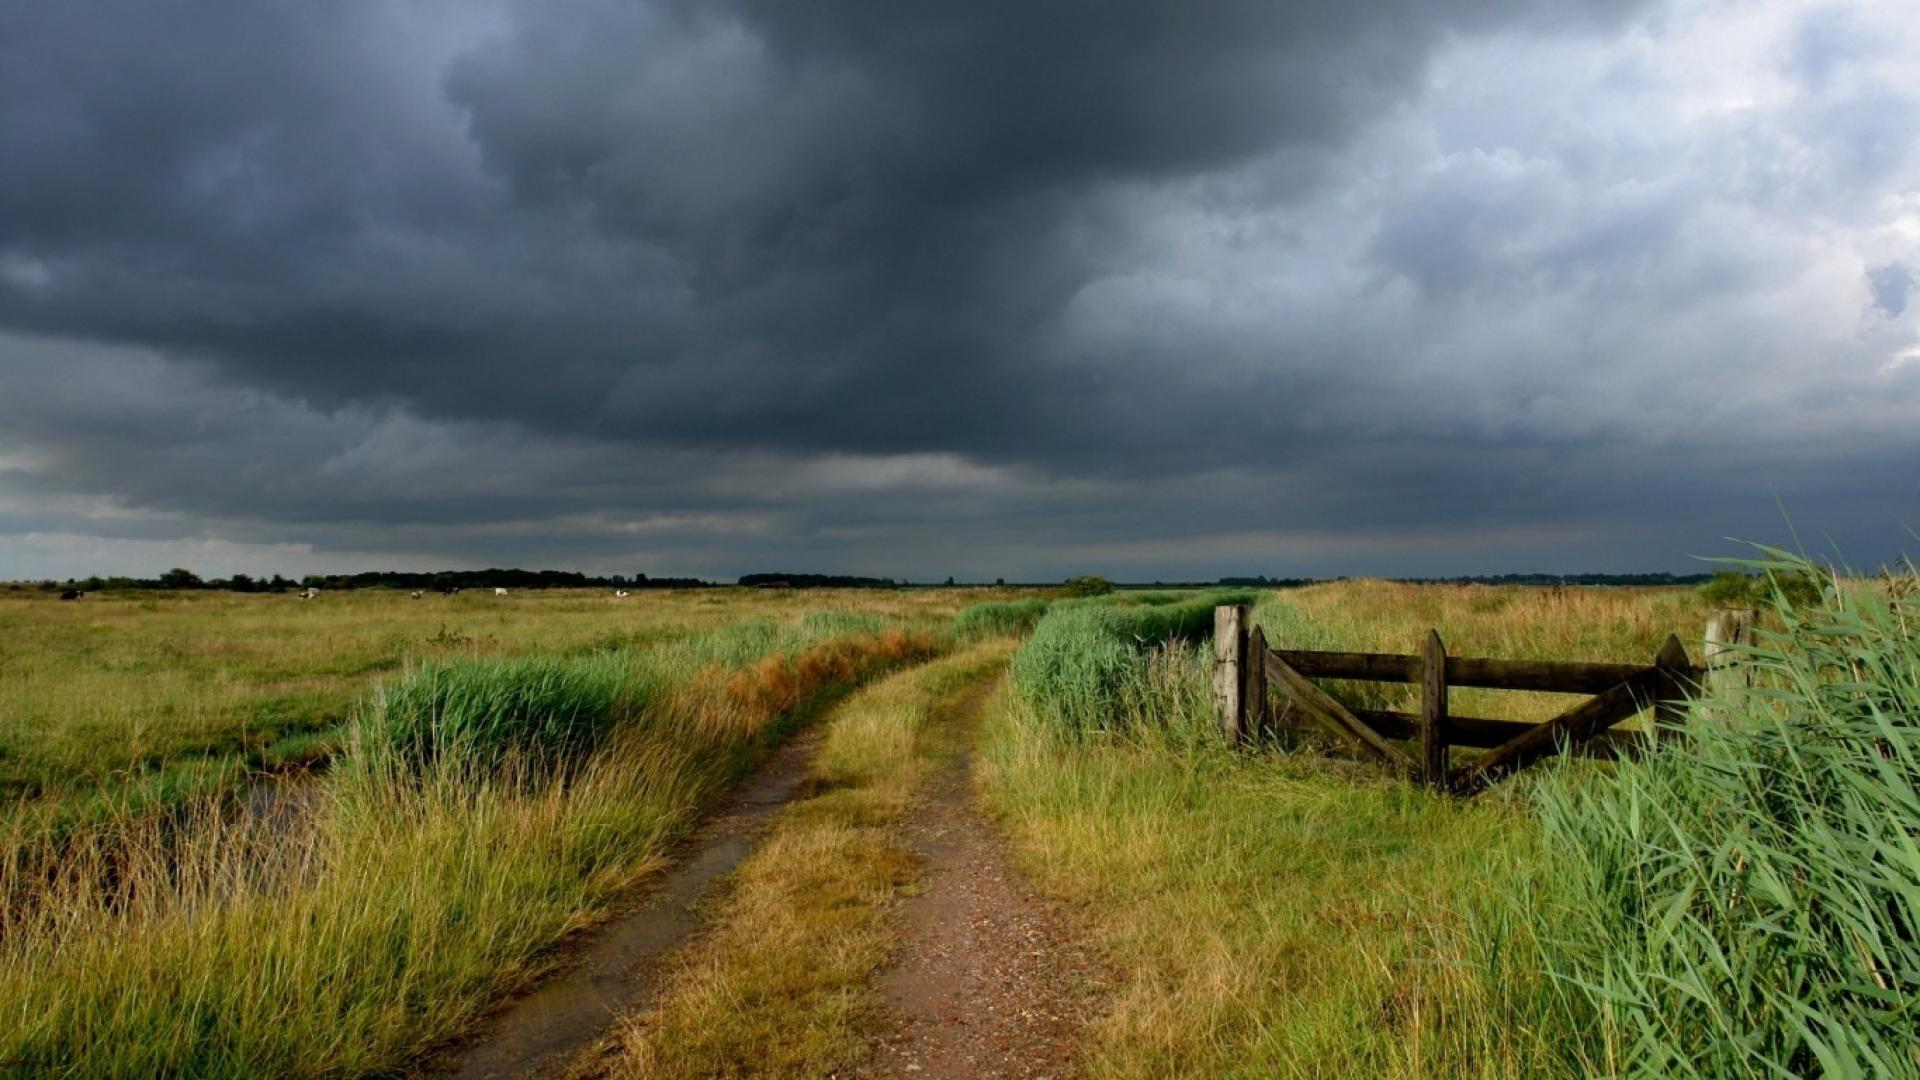 clouds-landscapes-nature-country-gate-gloomy-sky-1920x1080-22478.jpg